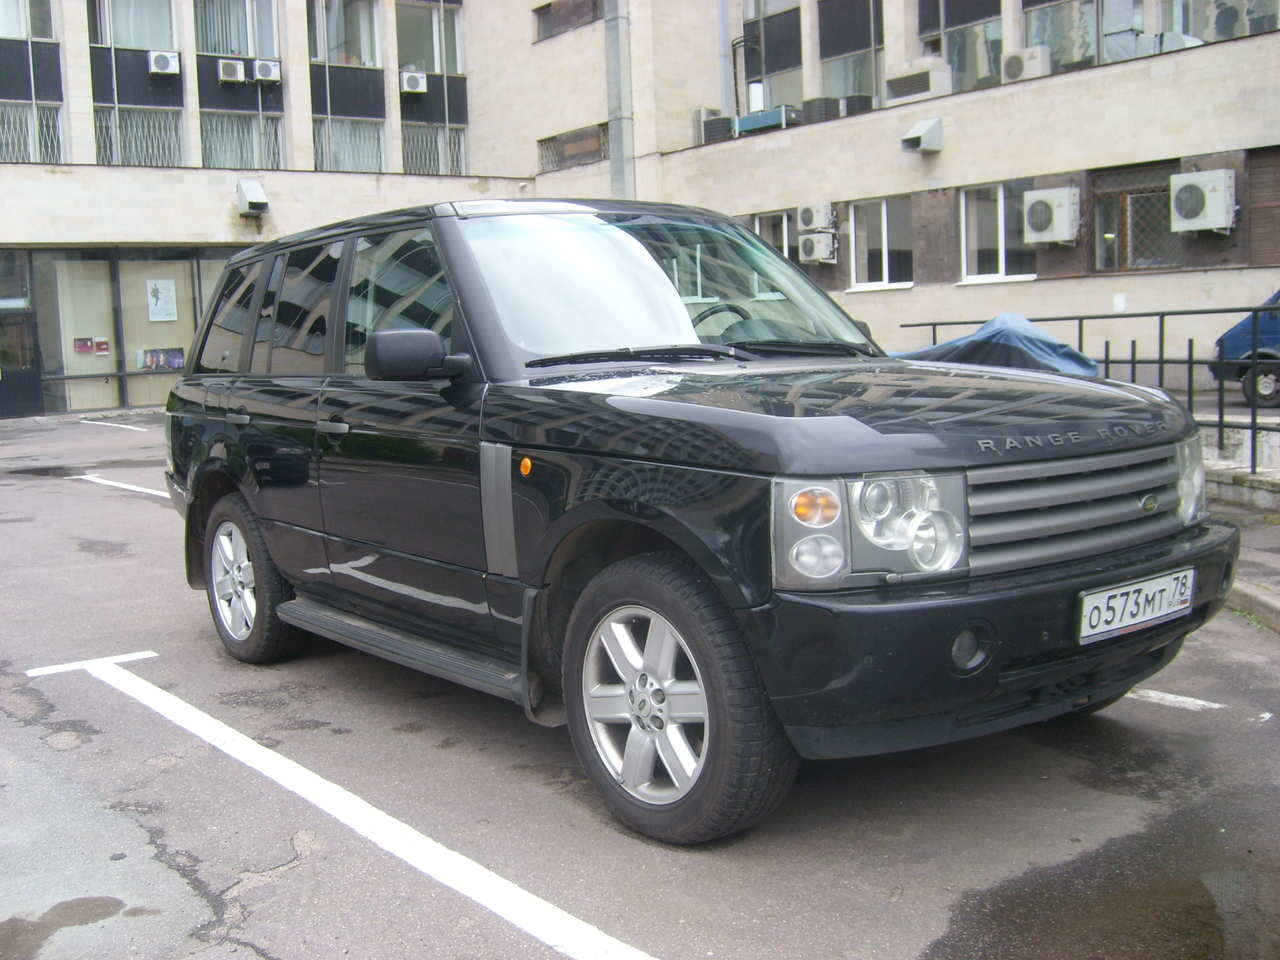 2004 land rover range rover photos 4 4 gasoline automatic for sale. Black Bedroom Furniture Sets. Home Design Ideas